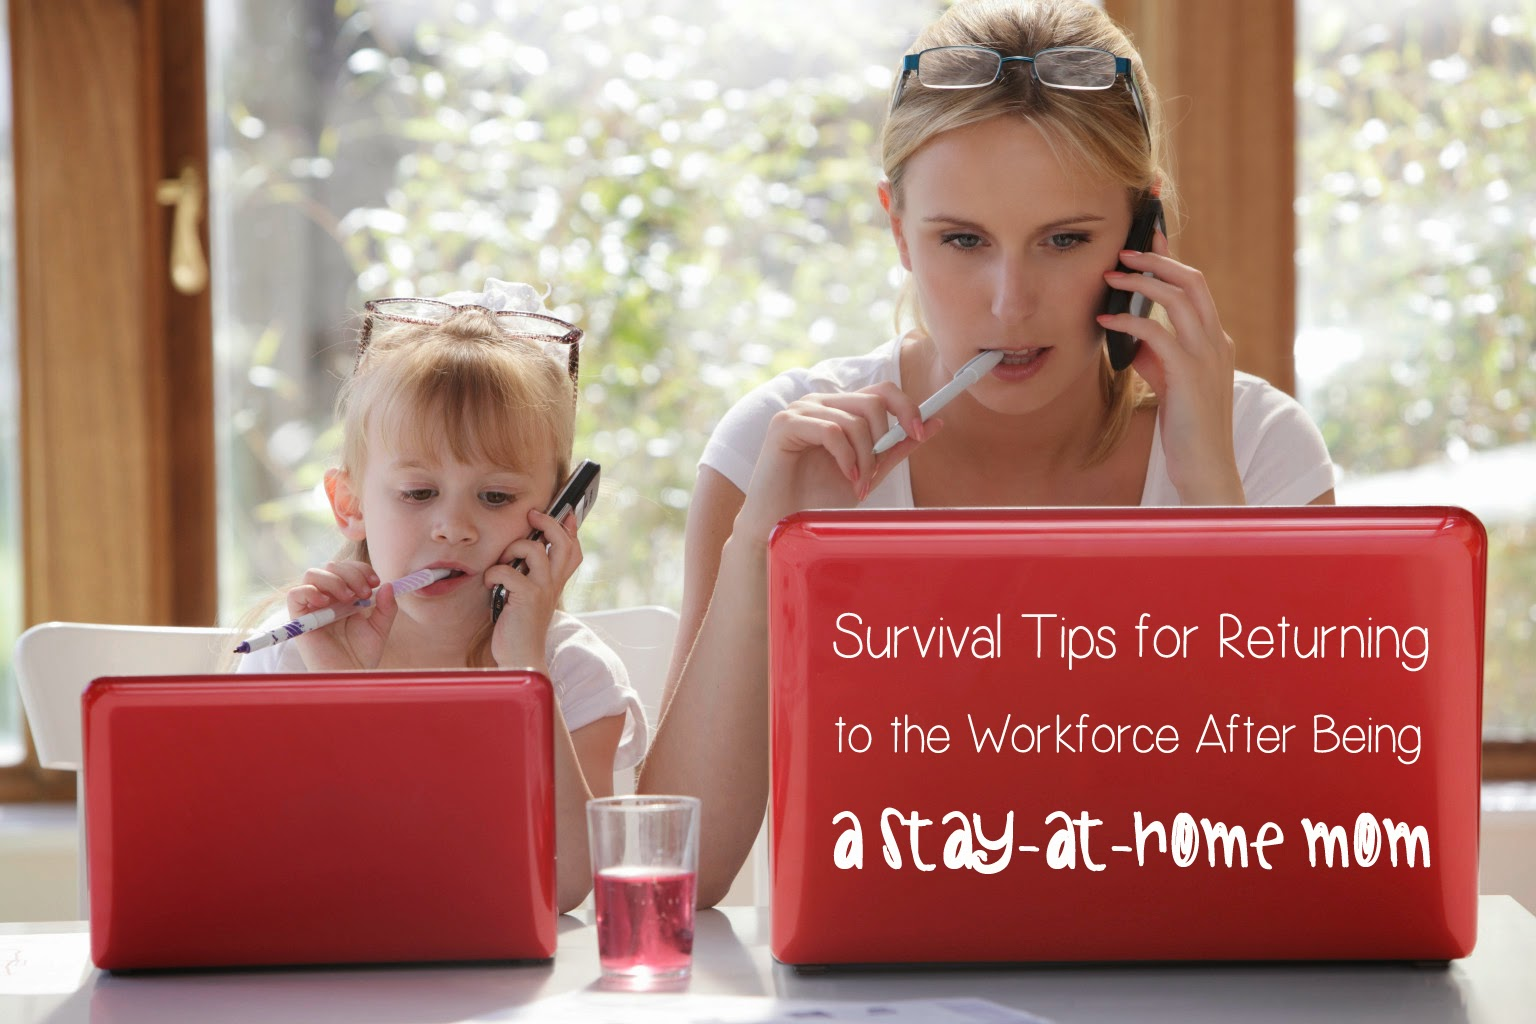 Survival Tips For Returning to the Workforce After Being a Stay-at-Home Mom